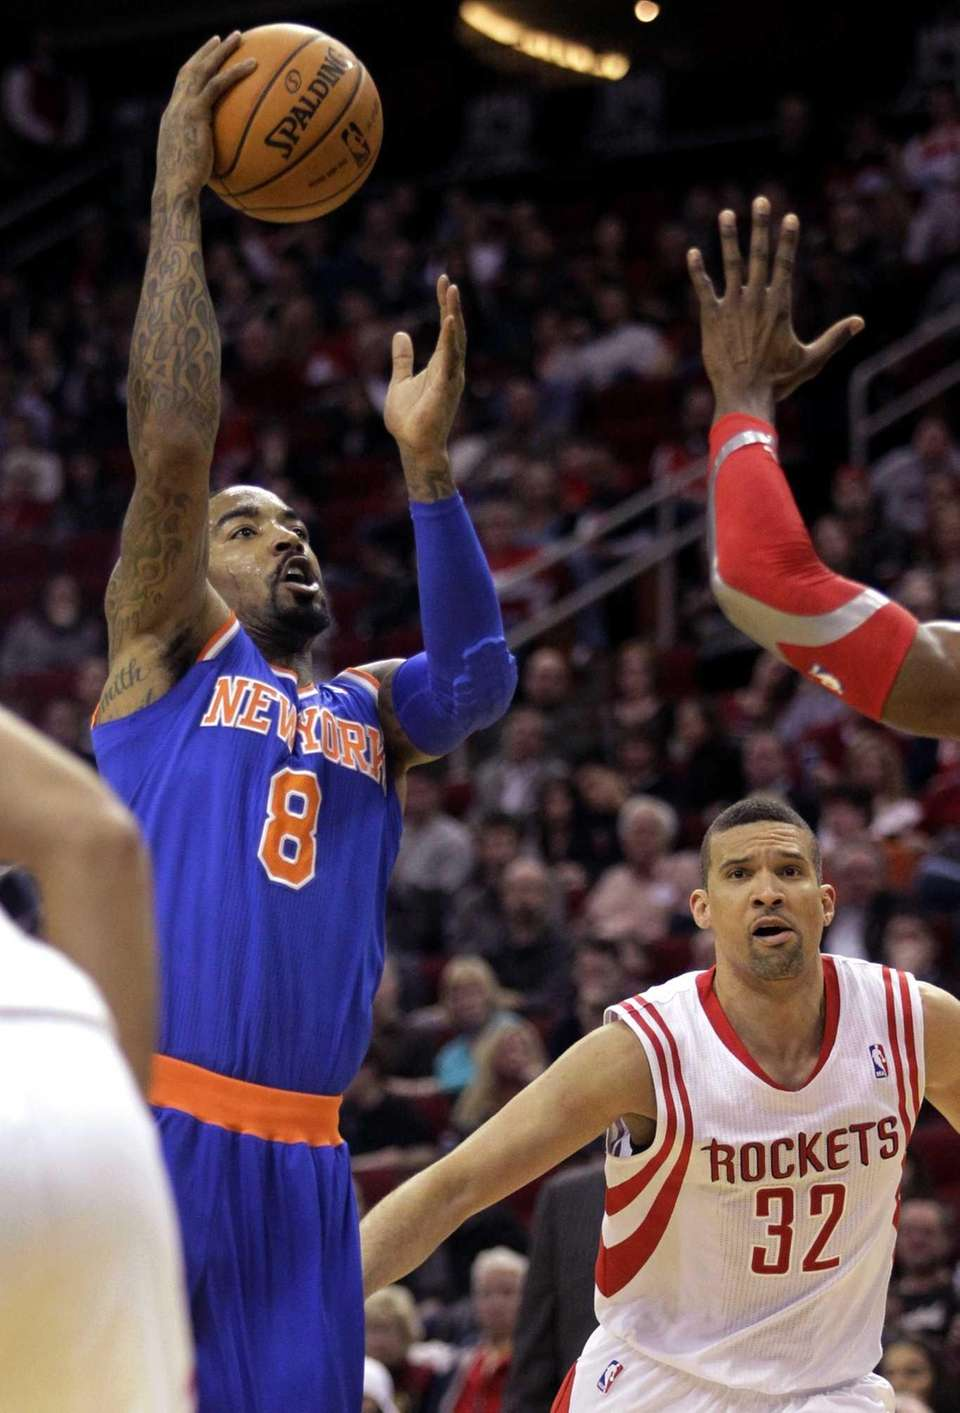 Knicks guard J.R. Smith takes a shot during